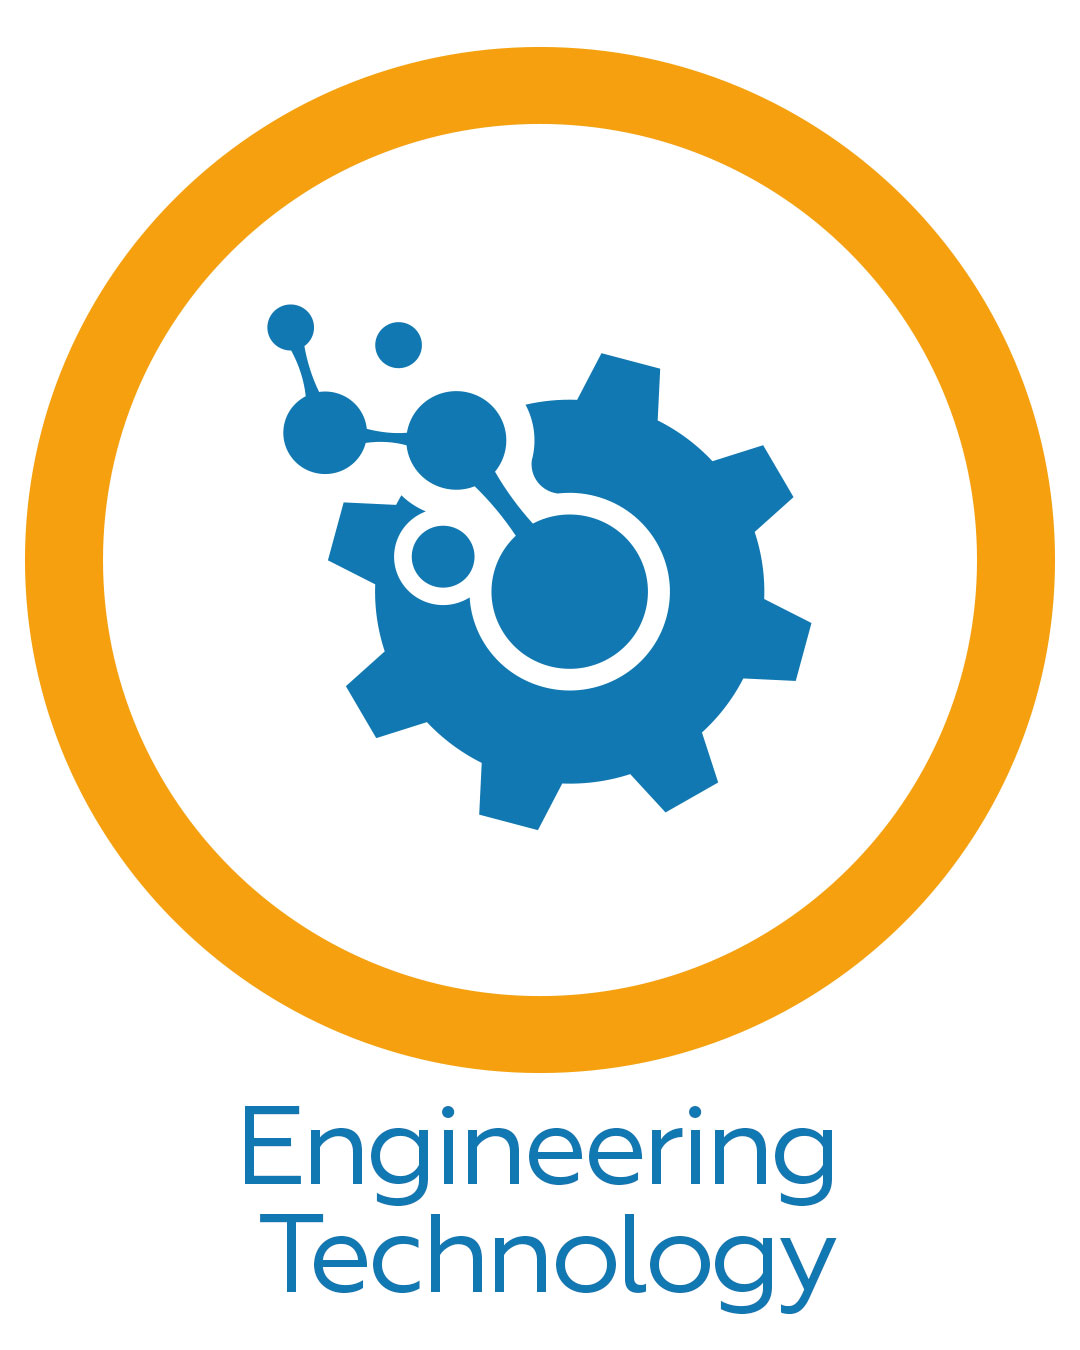 Hire engineers within Engineering technology